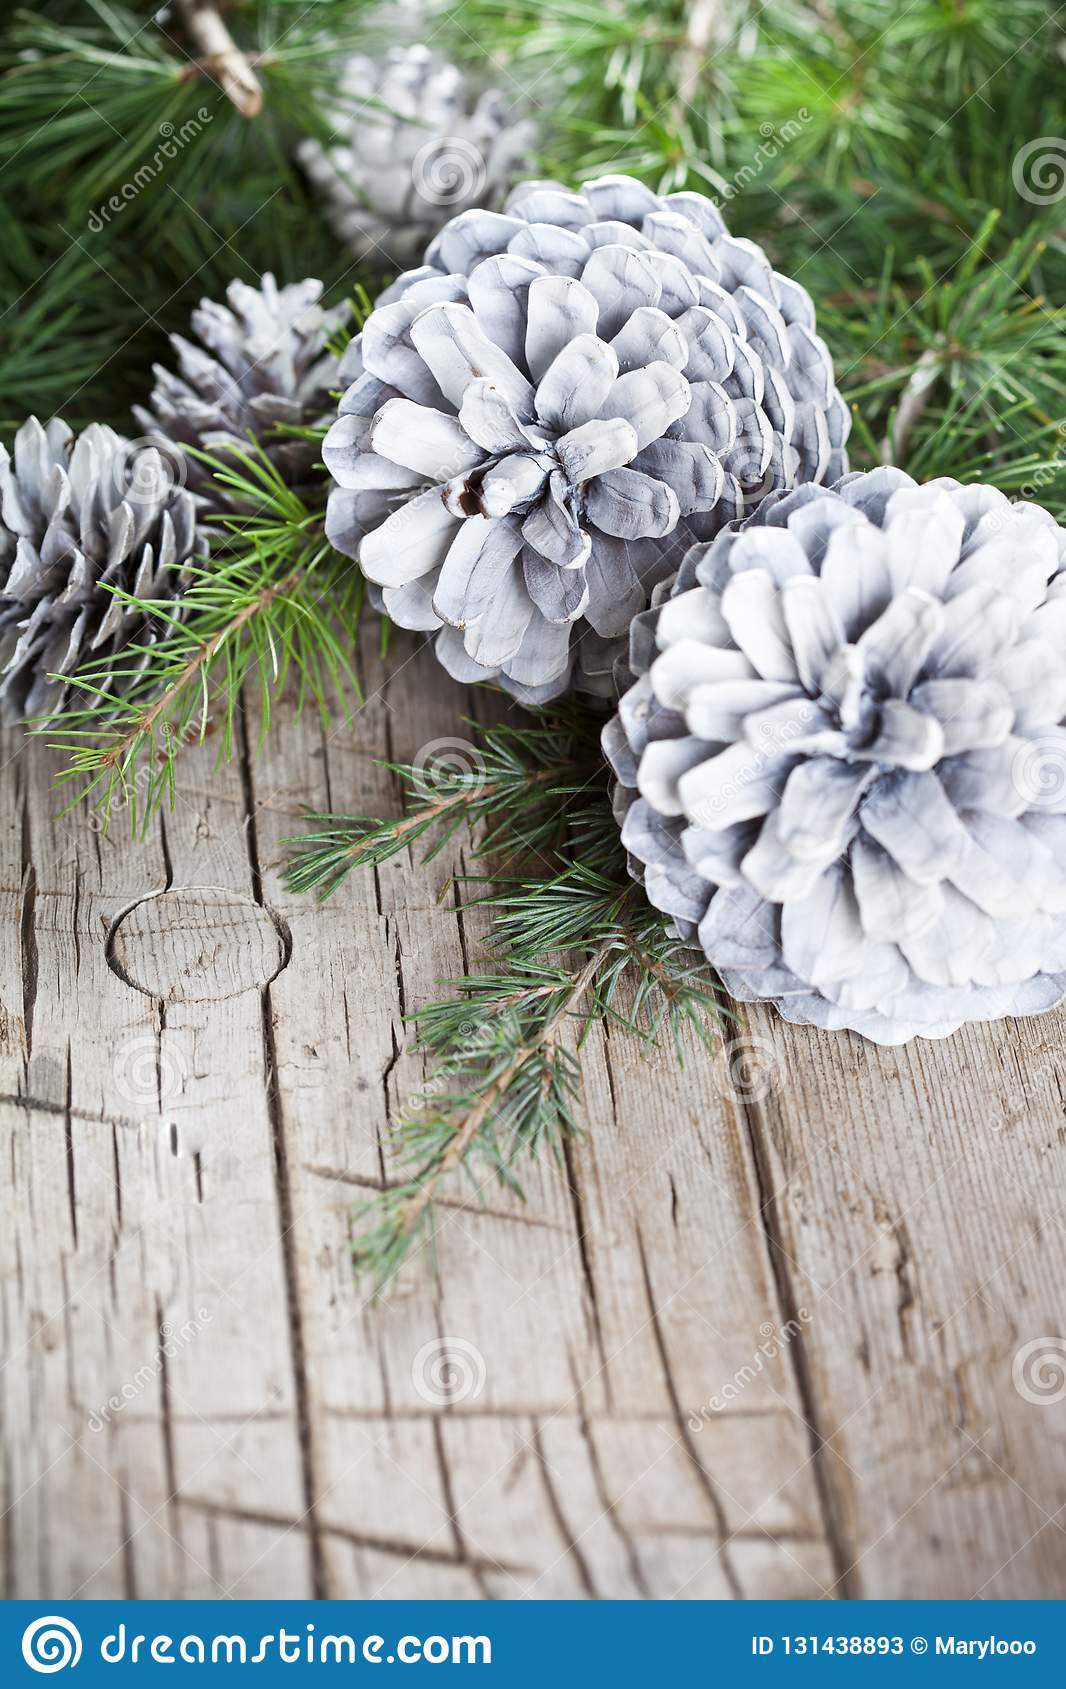 Evergreen fir tree branch and white pine cones closeup on wooden background